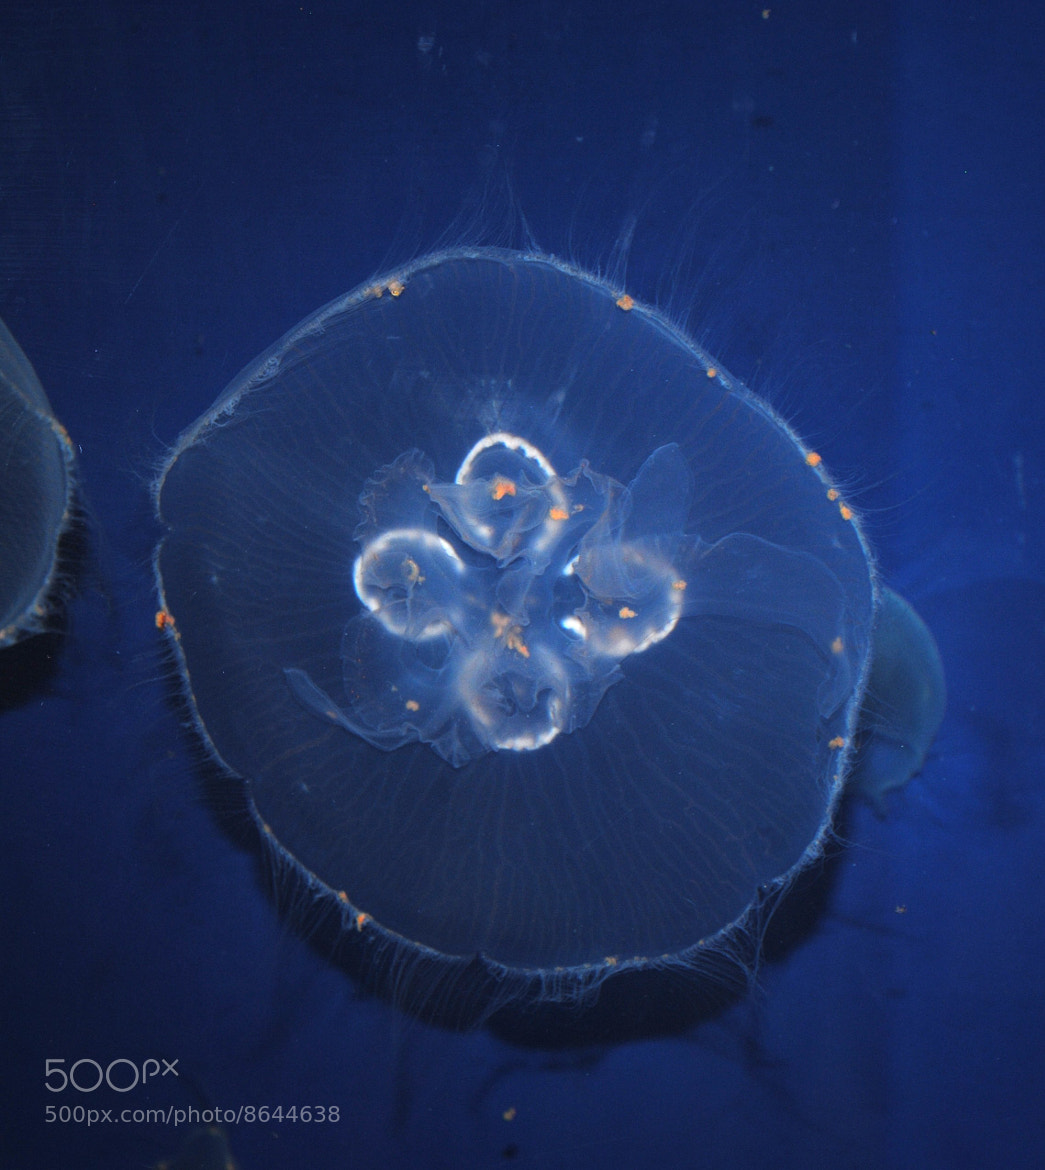 Photograph moon jelly by beka 3000 on 500px